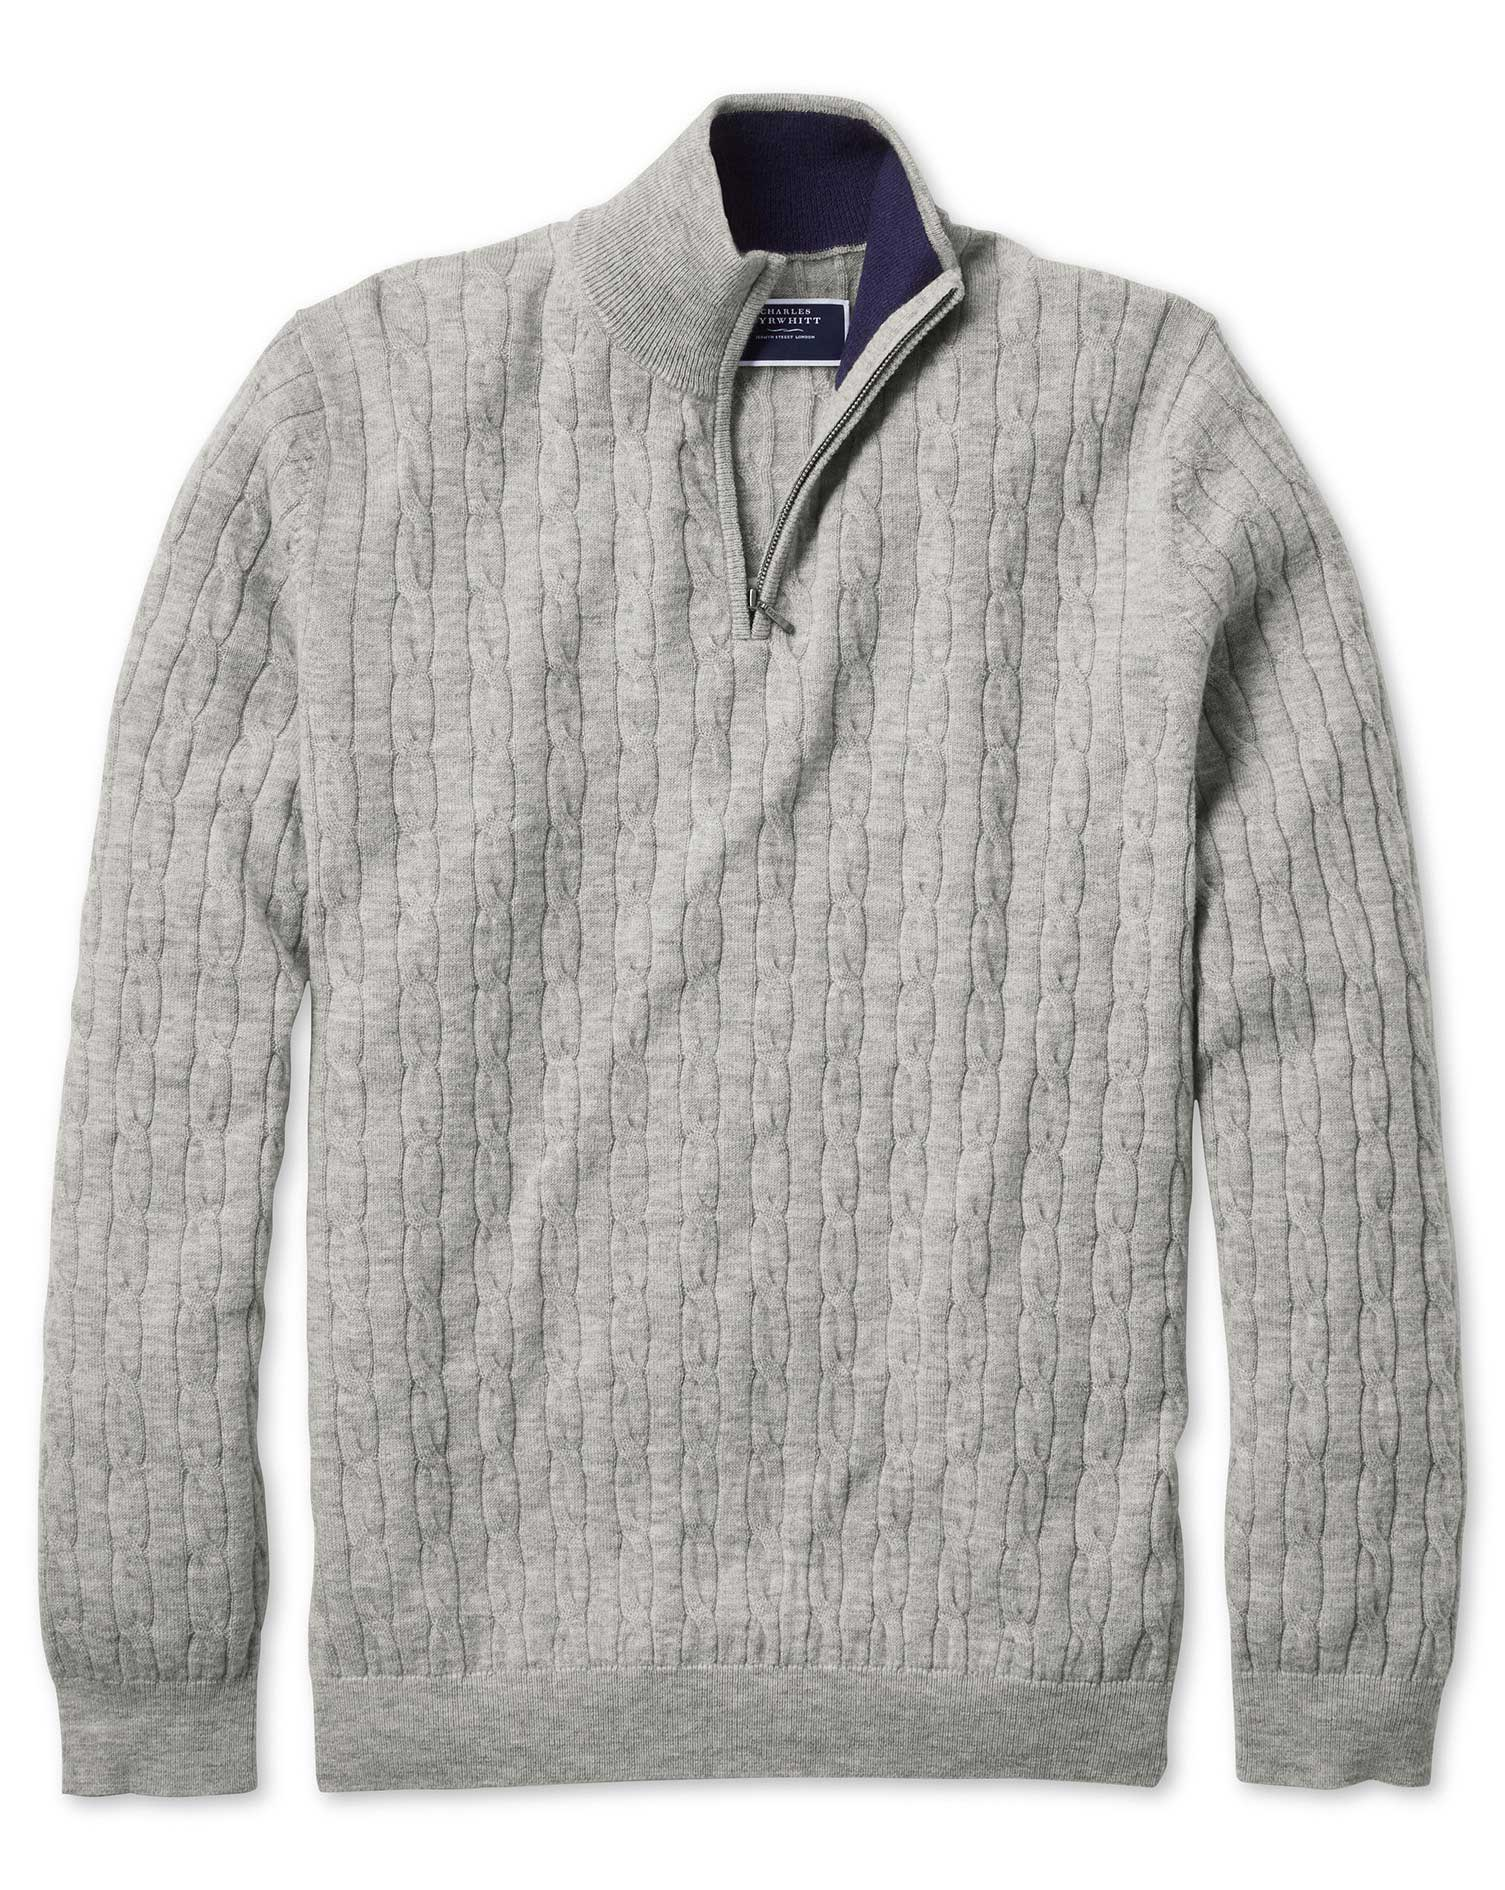 Light Grey Zip Neck Lambswool Cable Knit Jumper Size Large by Charles Tyrwhitt